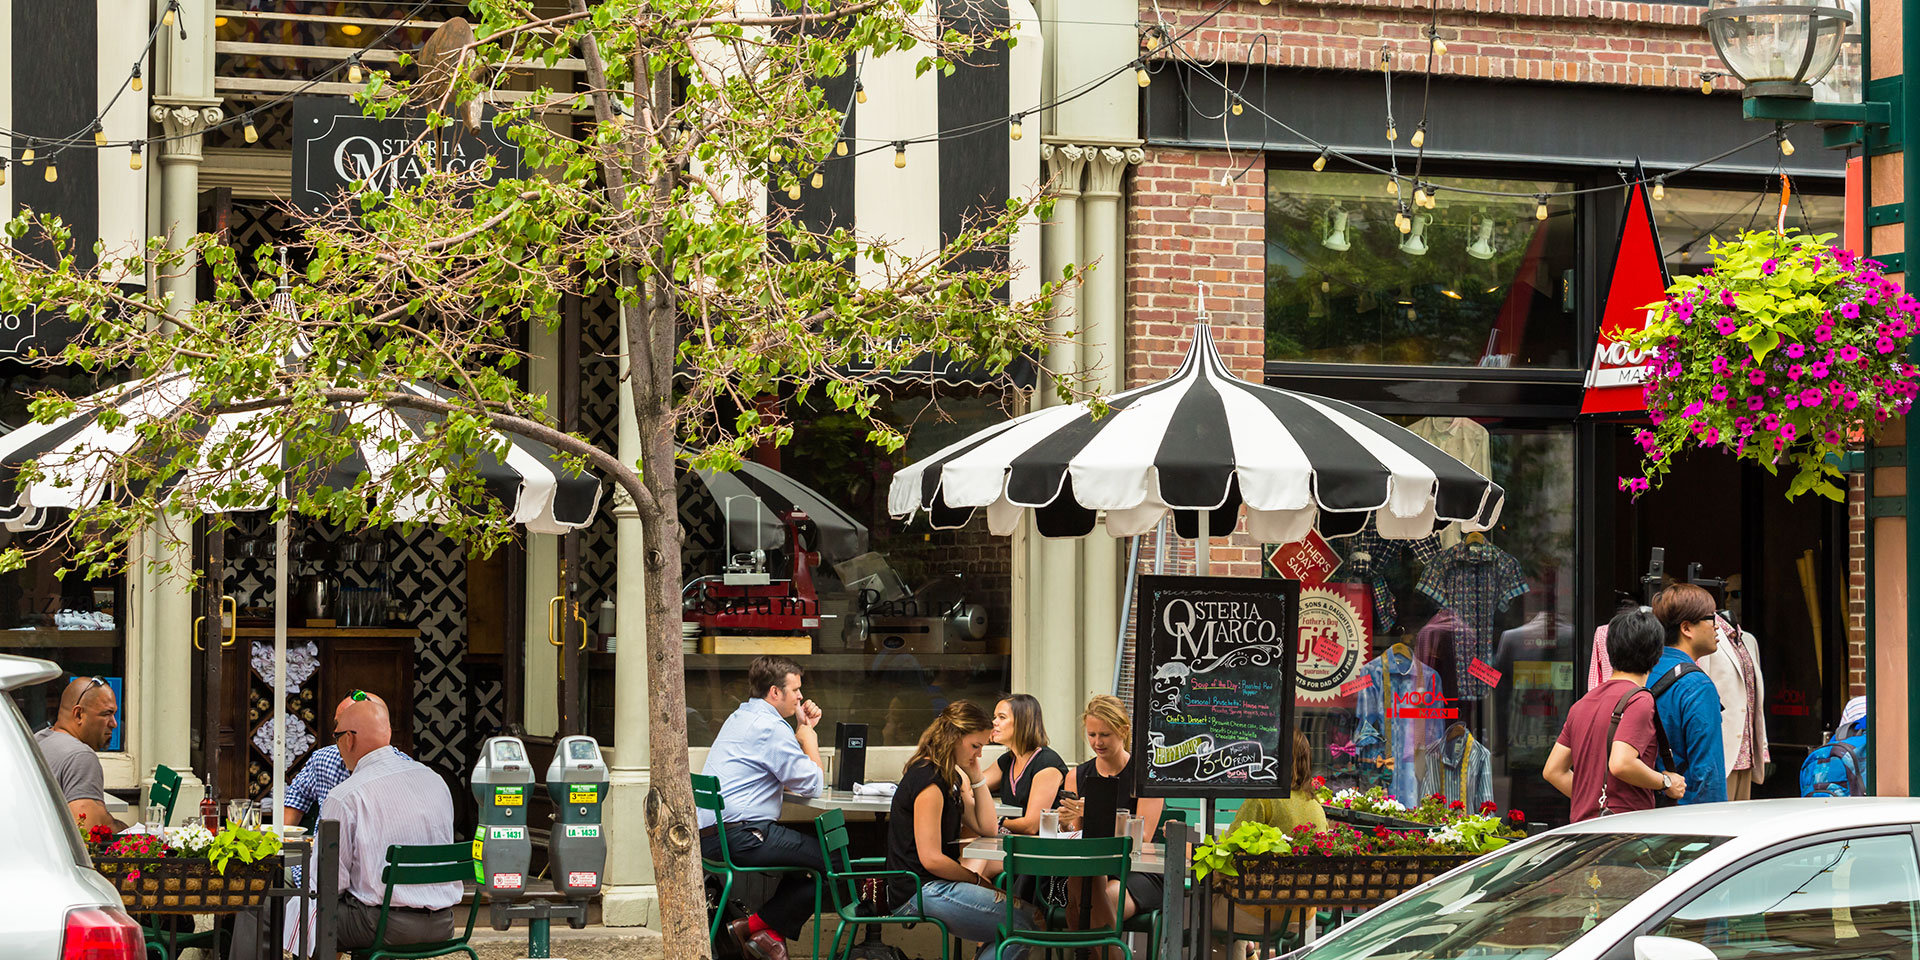 5 Denver Neighborhoods That Give a True Taste of the Mile High City